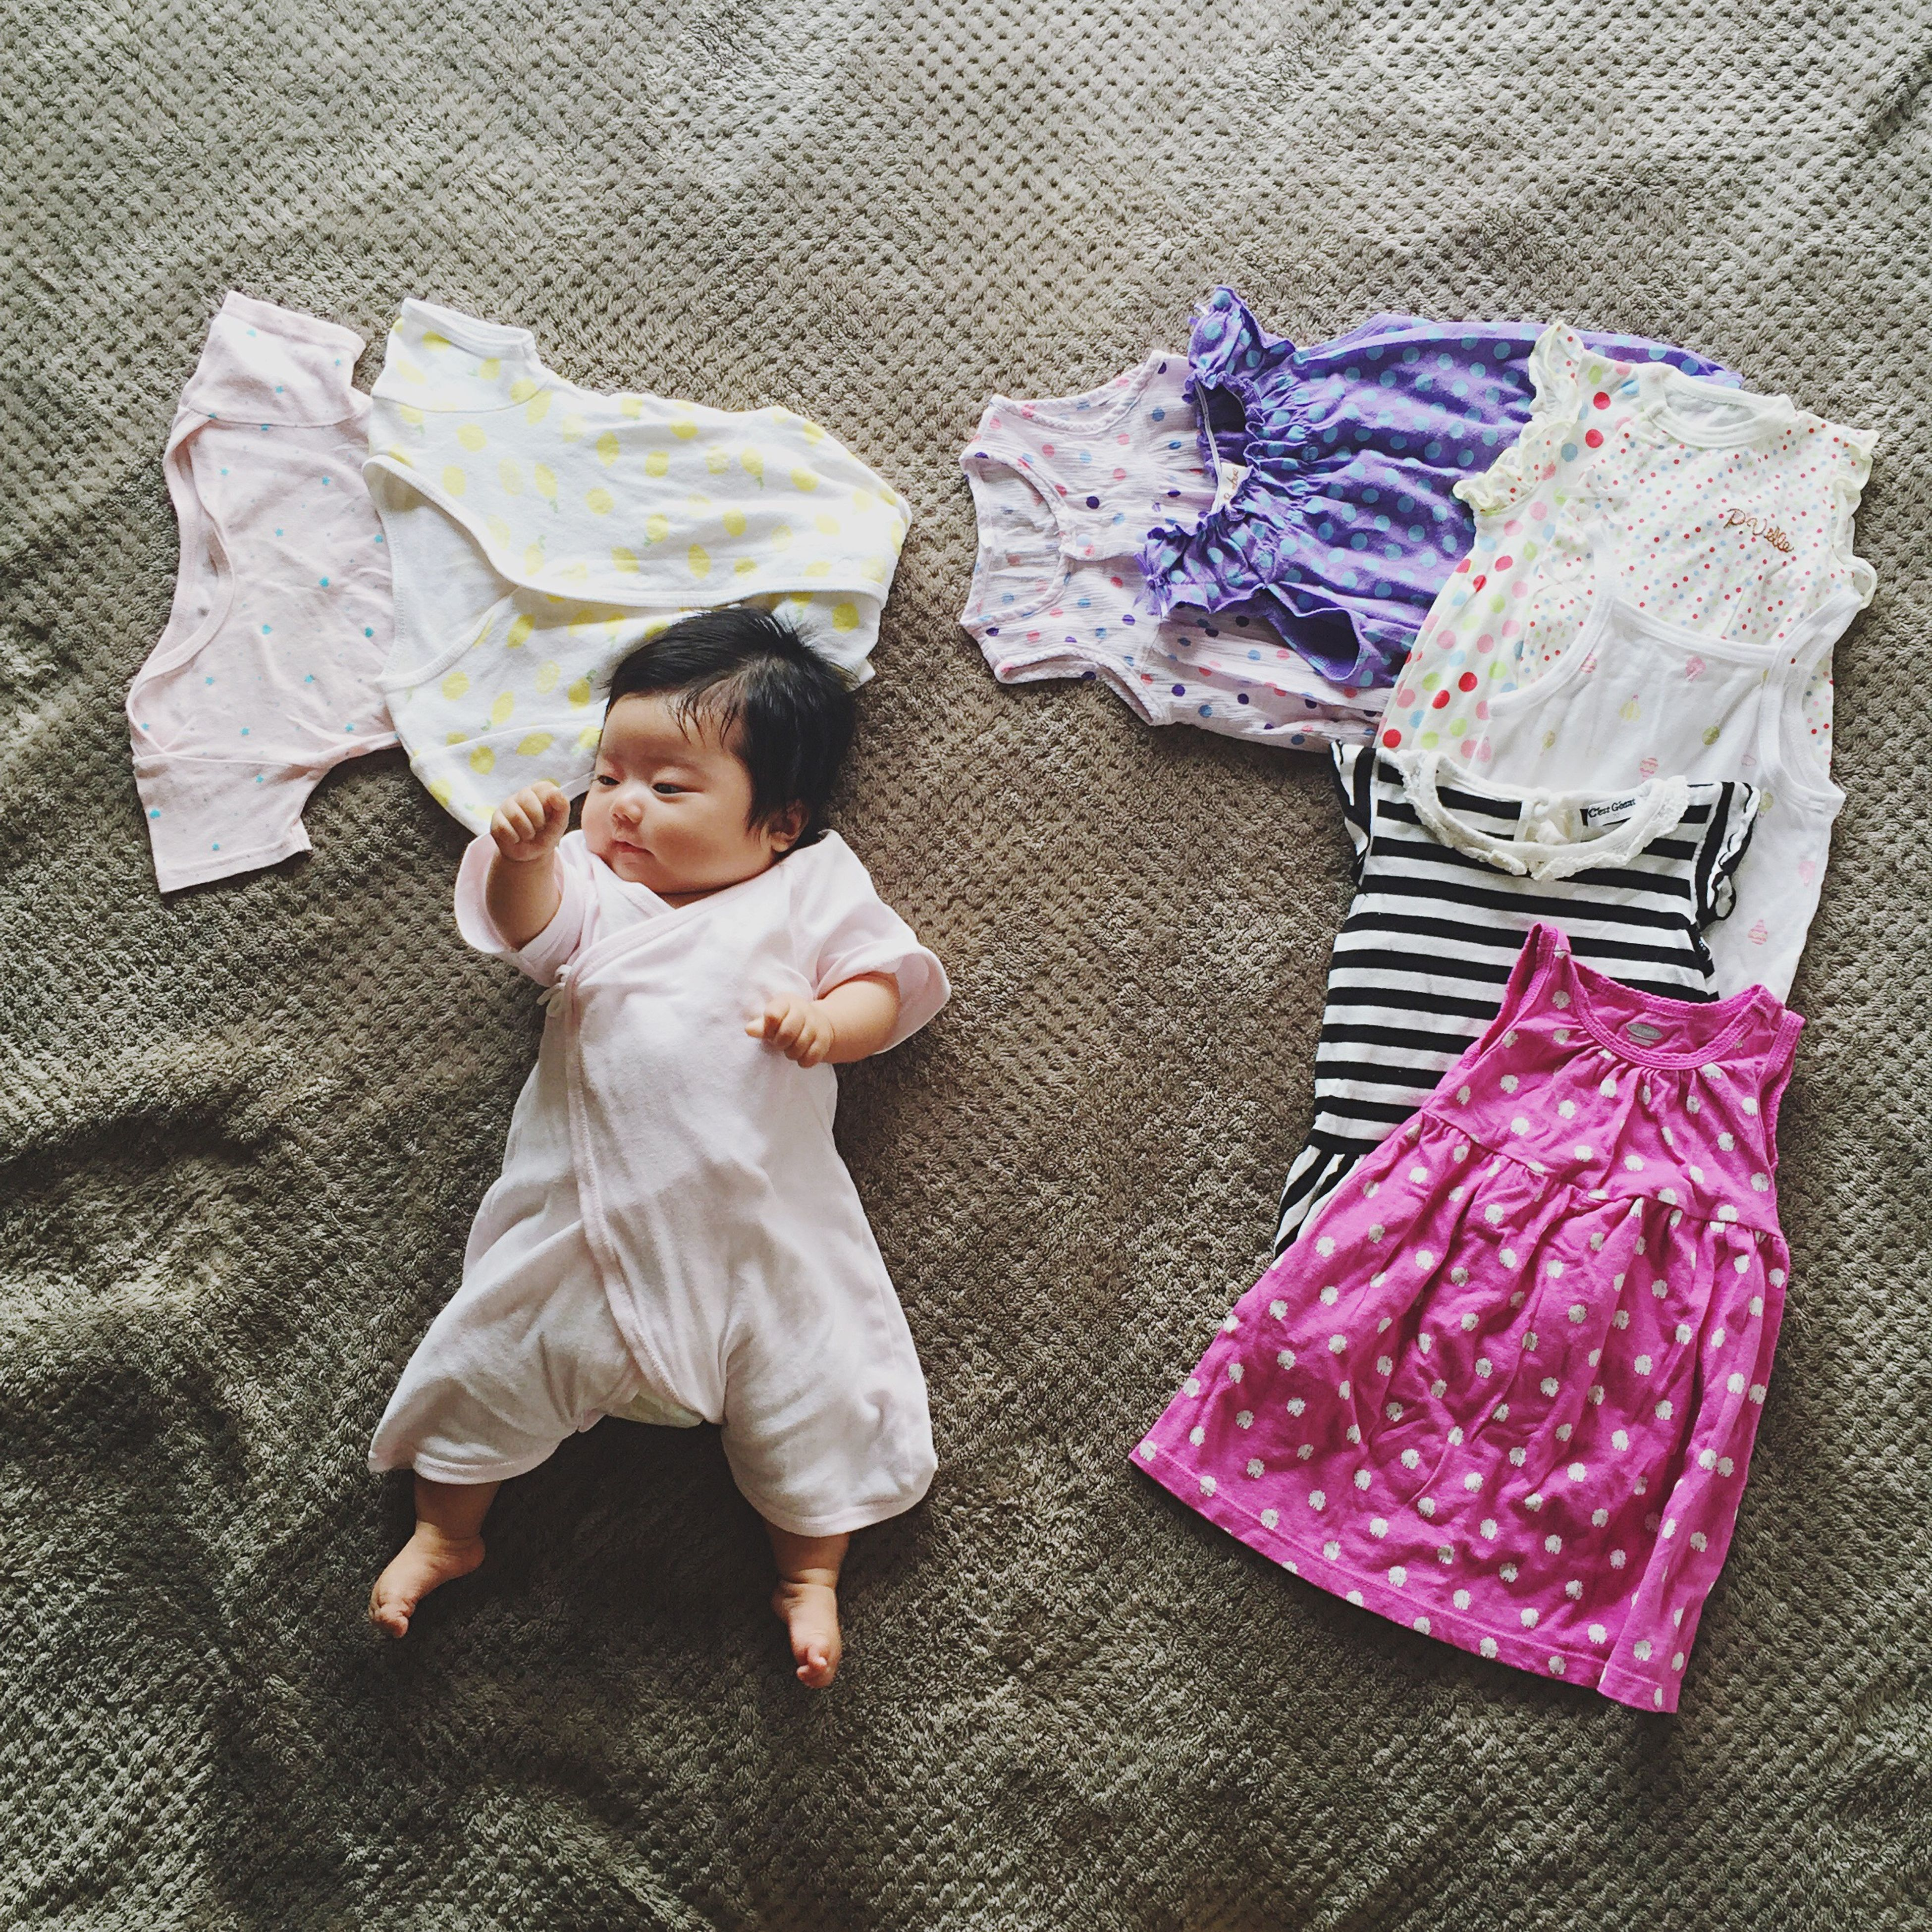 childhood, casual clothing, elementary age, lifestyles, girls, person, innocence, full length, boys, cute, leisure activity, high angle view, holding, standing, baby, front view, toddler, babyhood